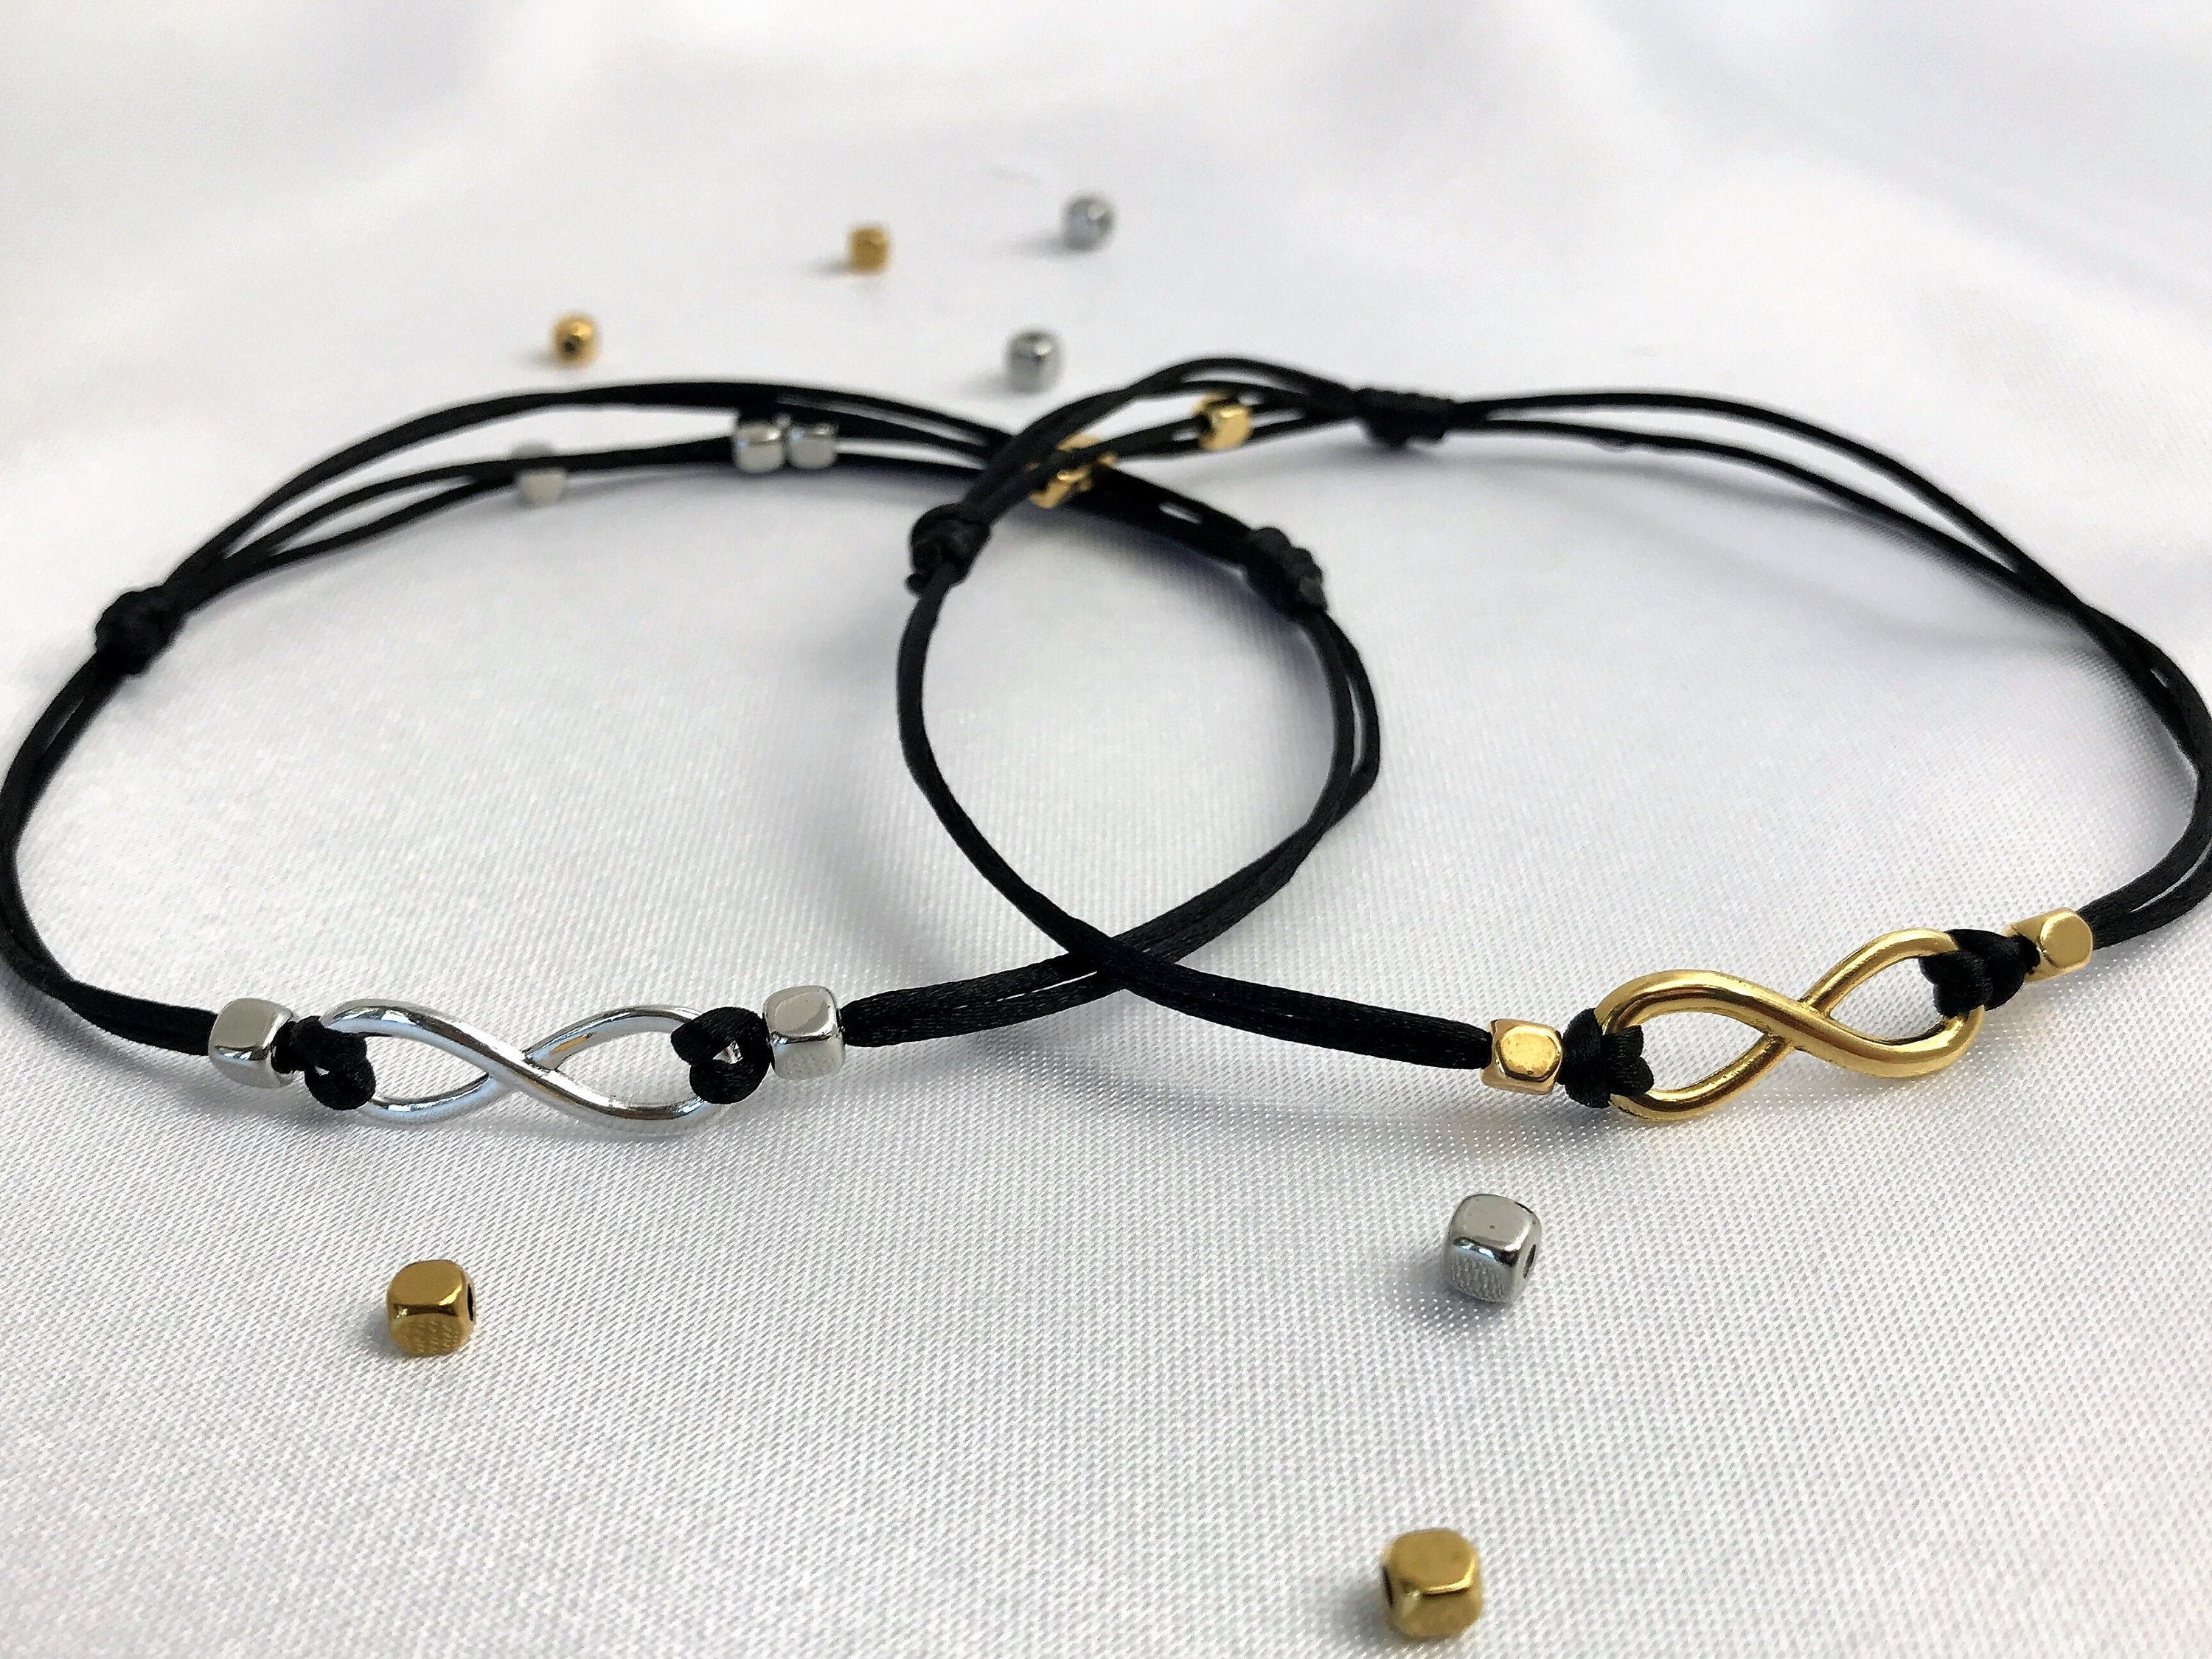 Partner Anklets Infinity Anklets for Couples Infinity Couples Anklet Friendship Goals Matching Best Friend Handmade Anklet Set of 2